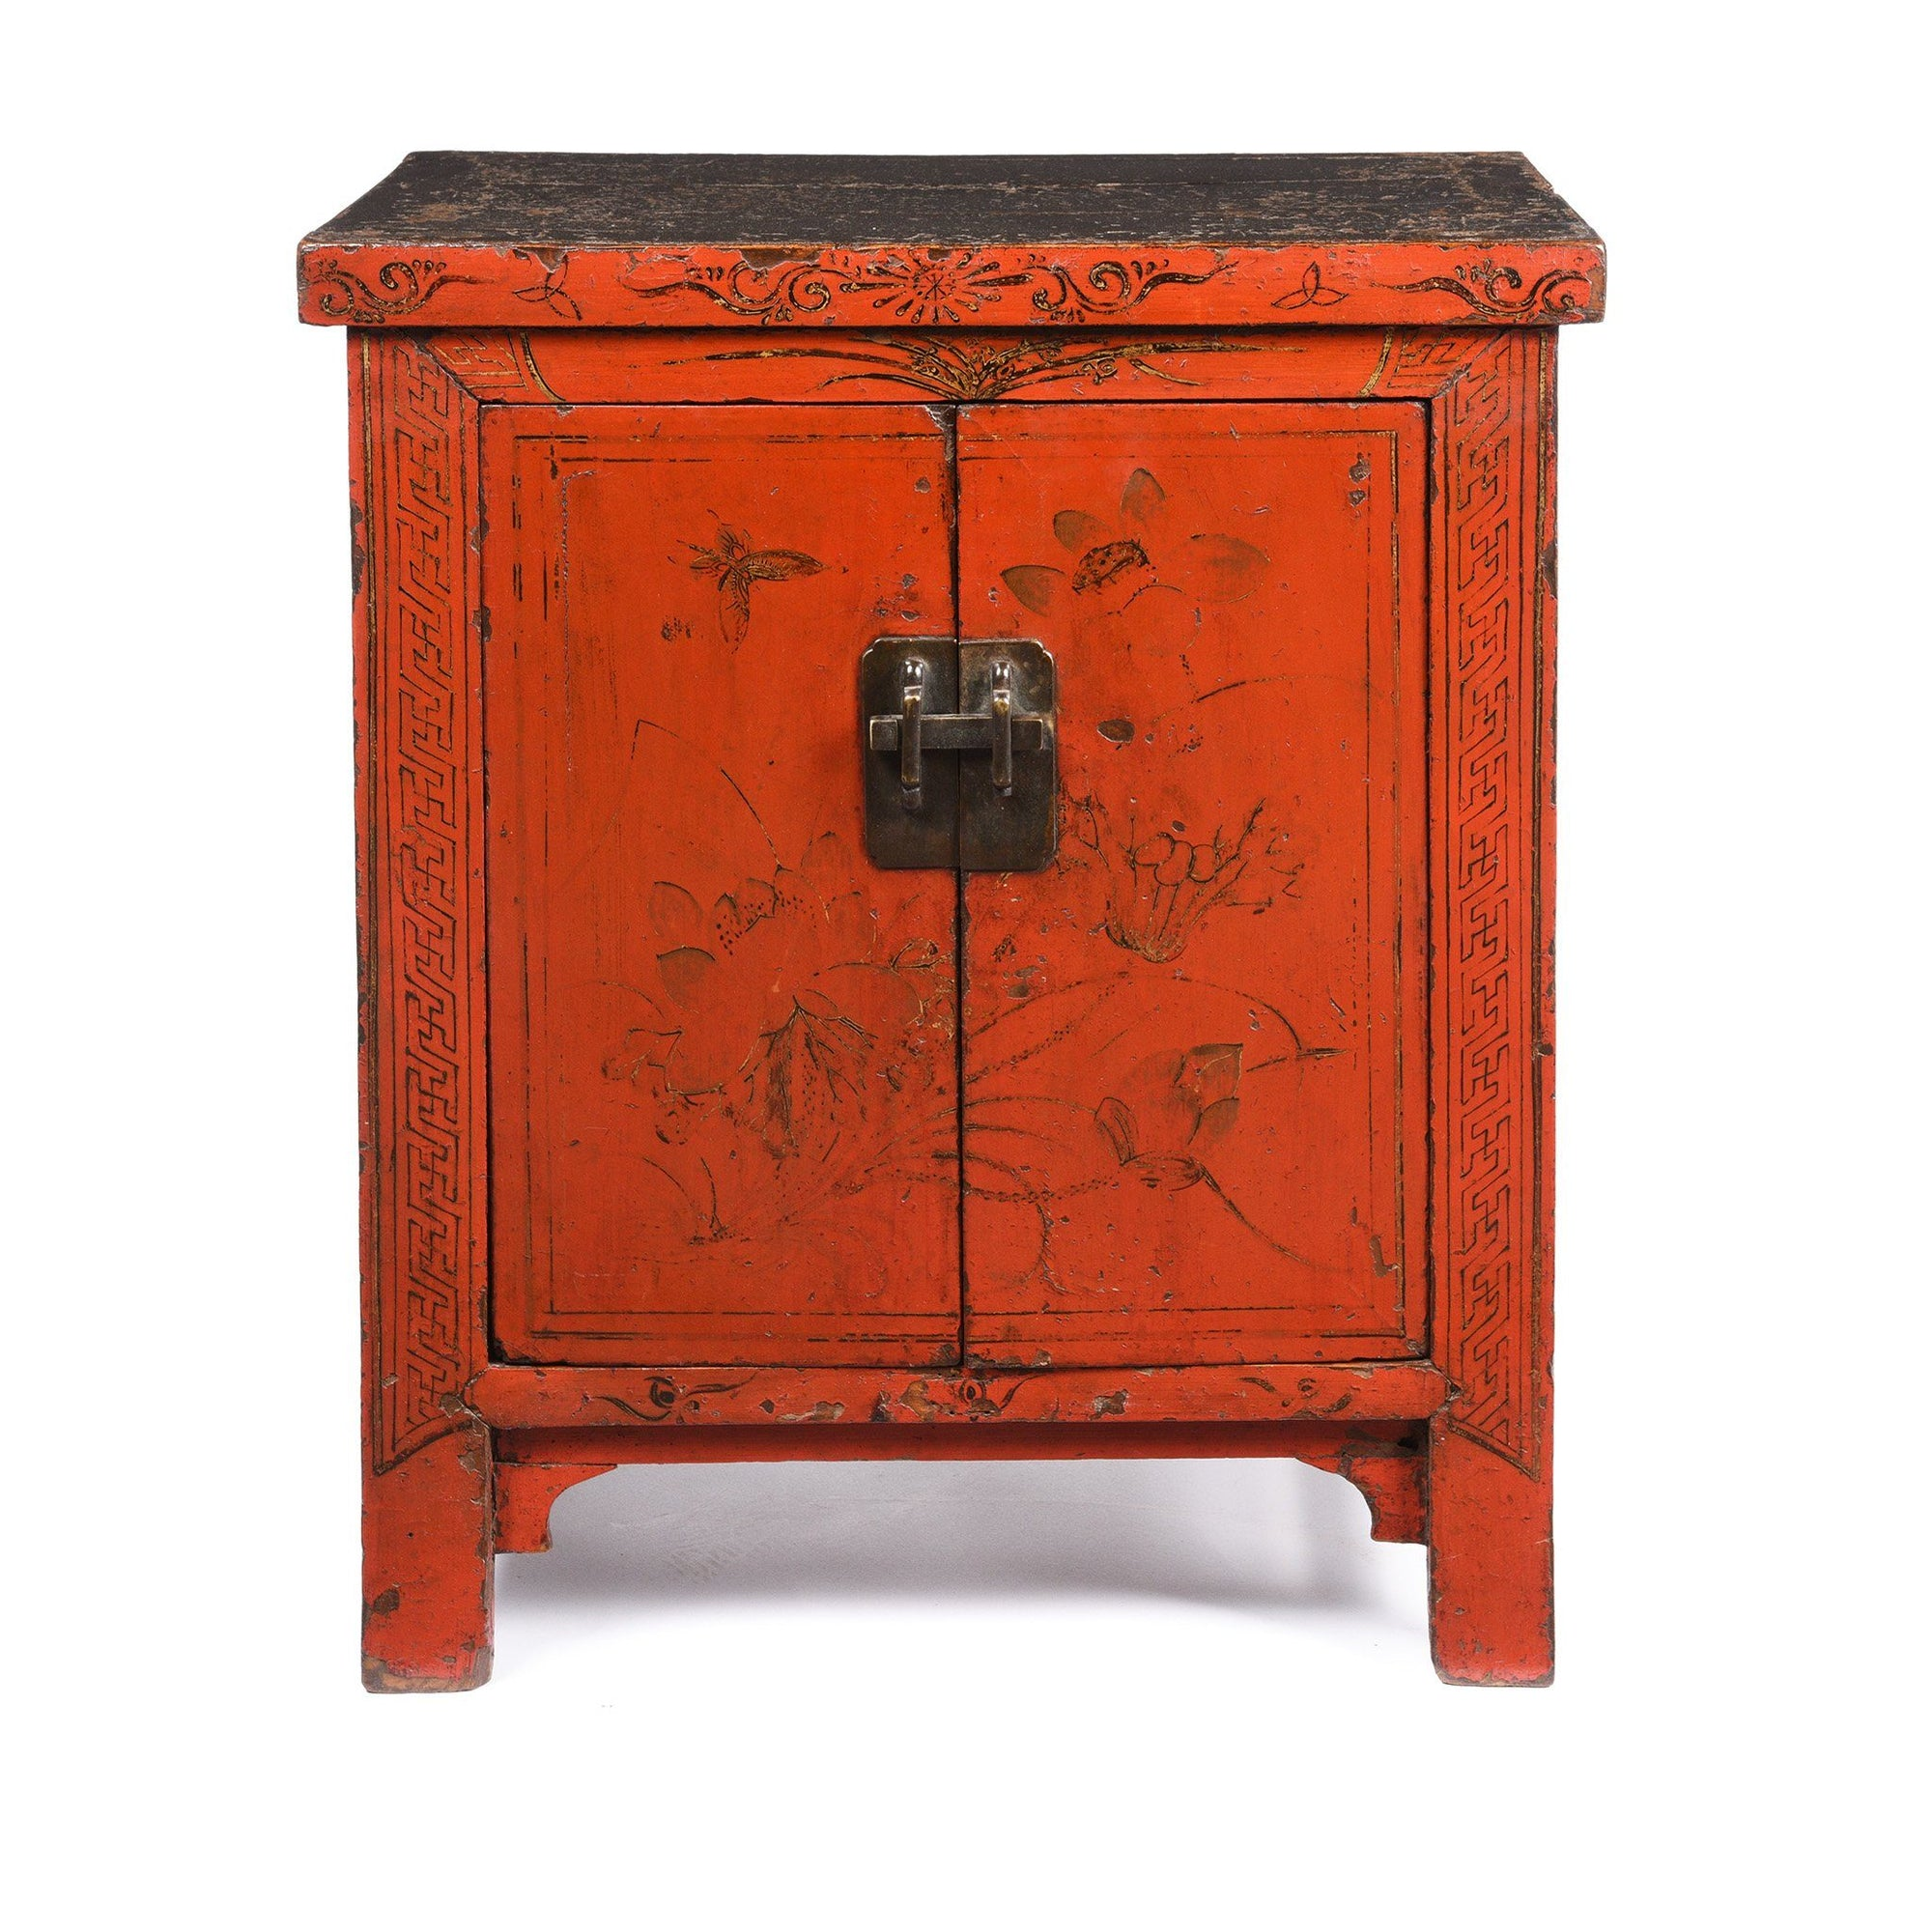 Chinese Red Lacquer Bedside Cabinet from Shanxi - Early 19thC | Indigo Antiques